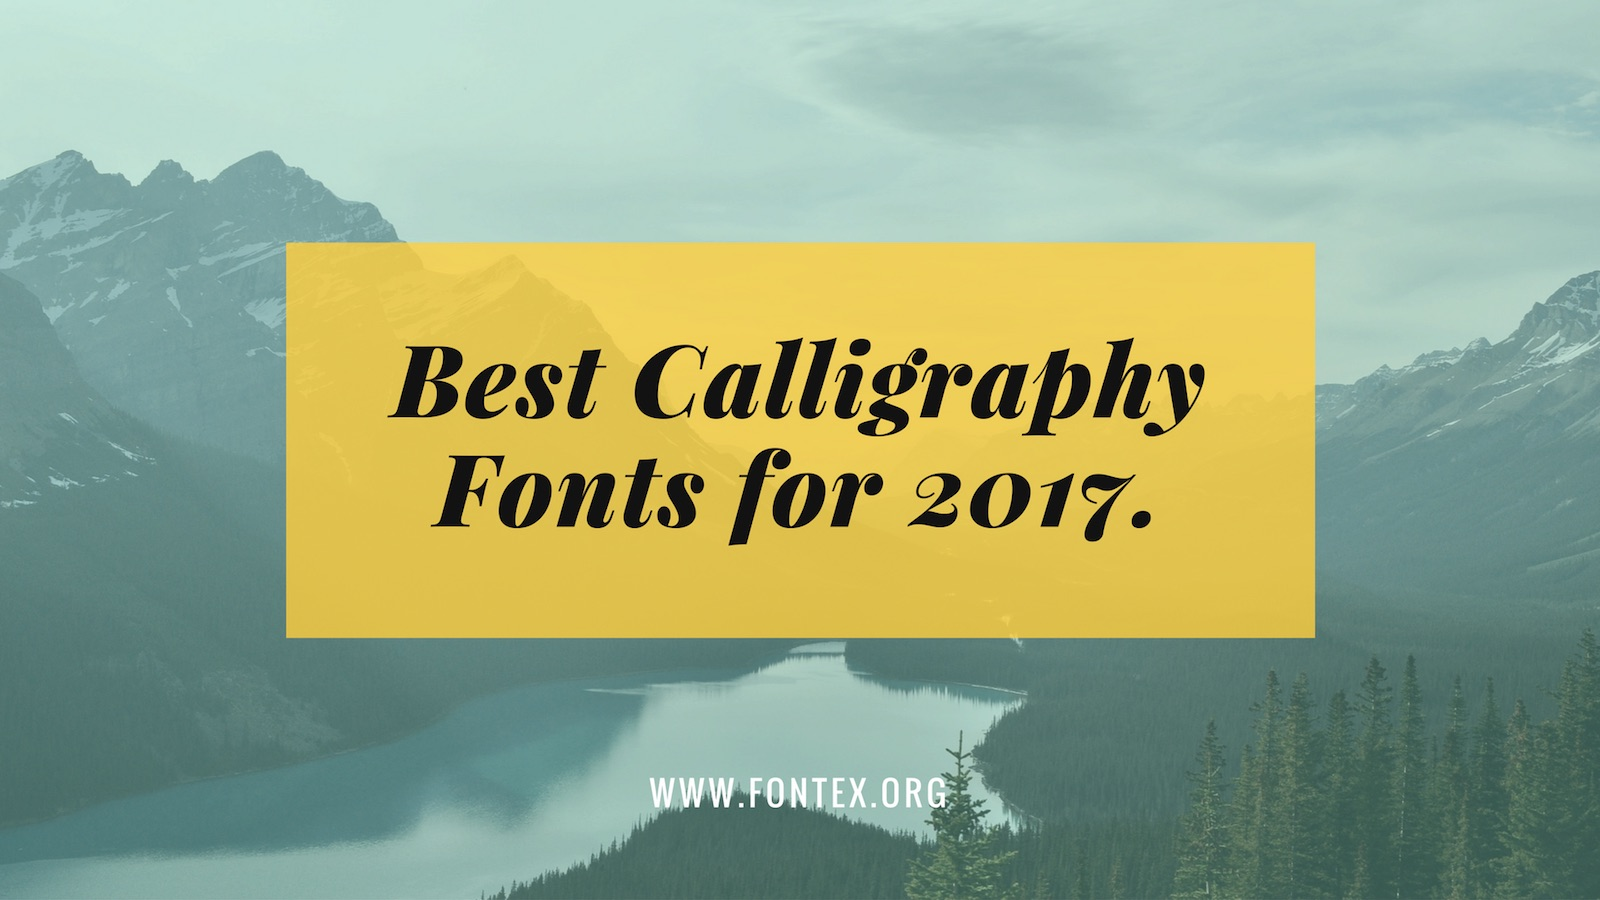 Calligraphy Fonts 2017